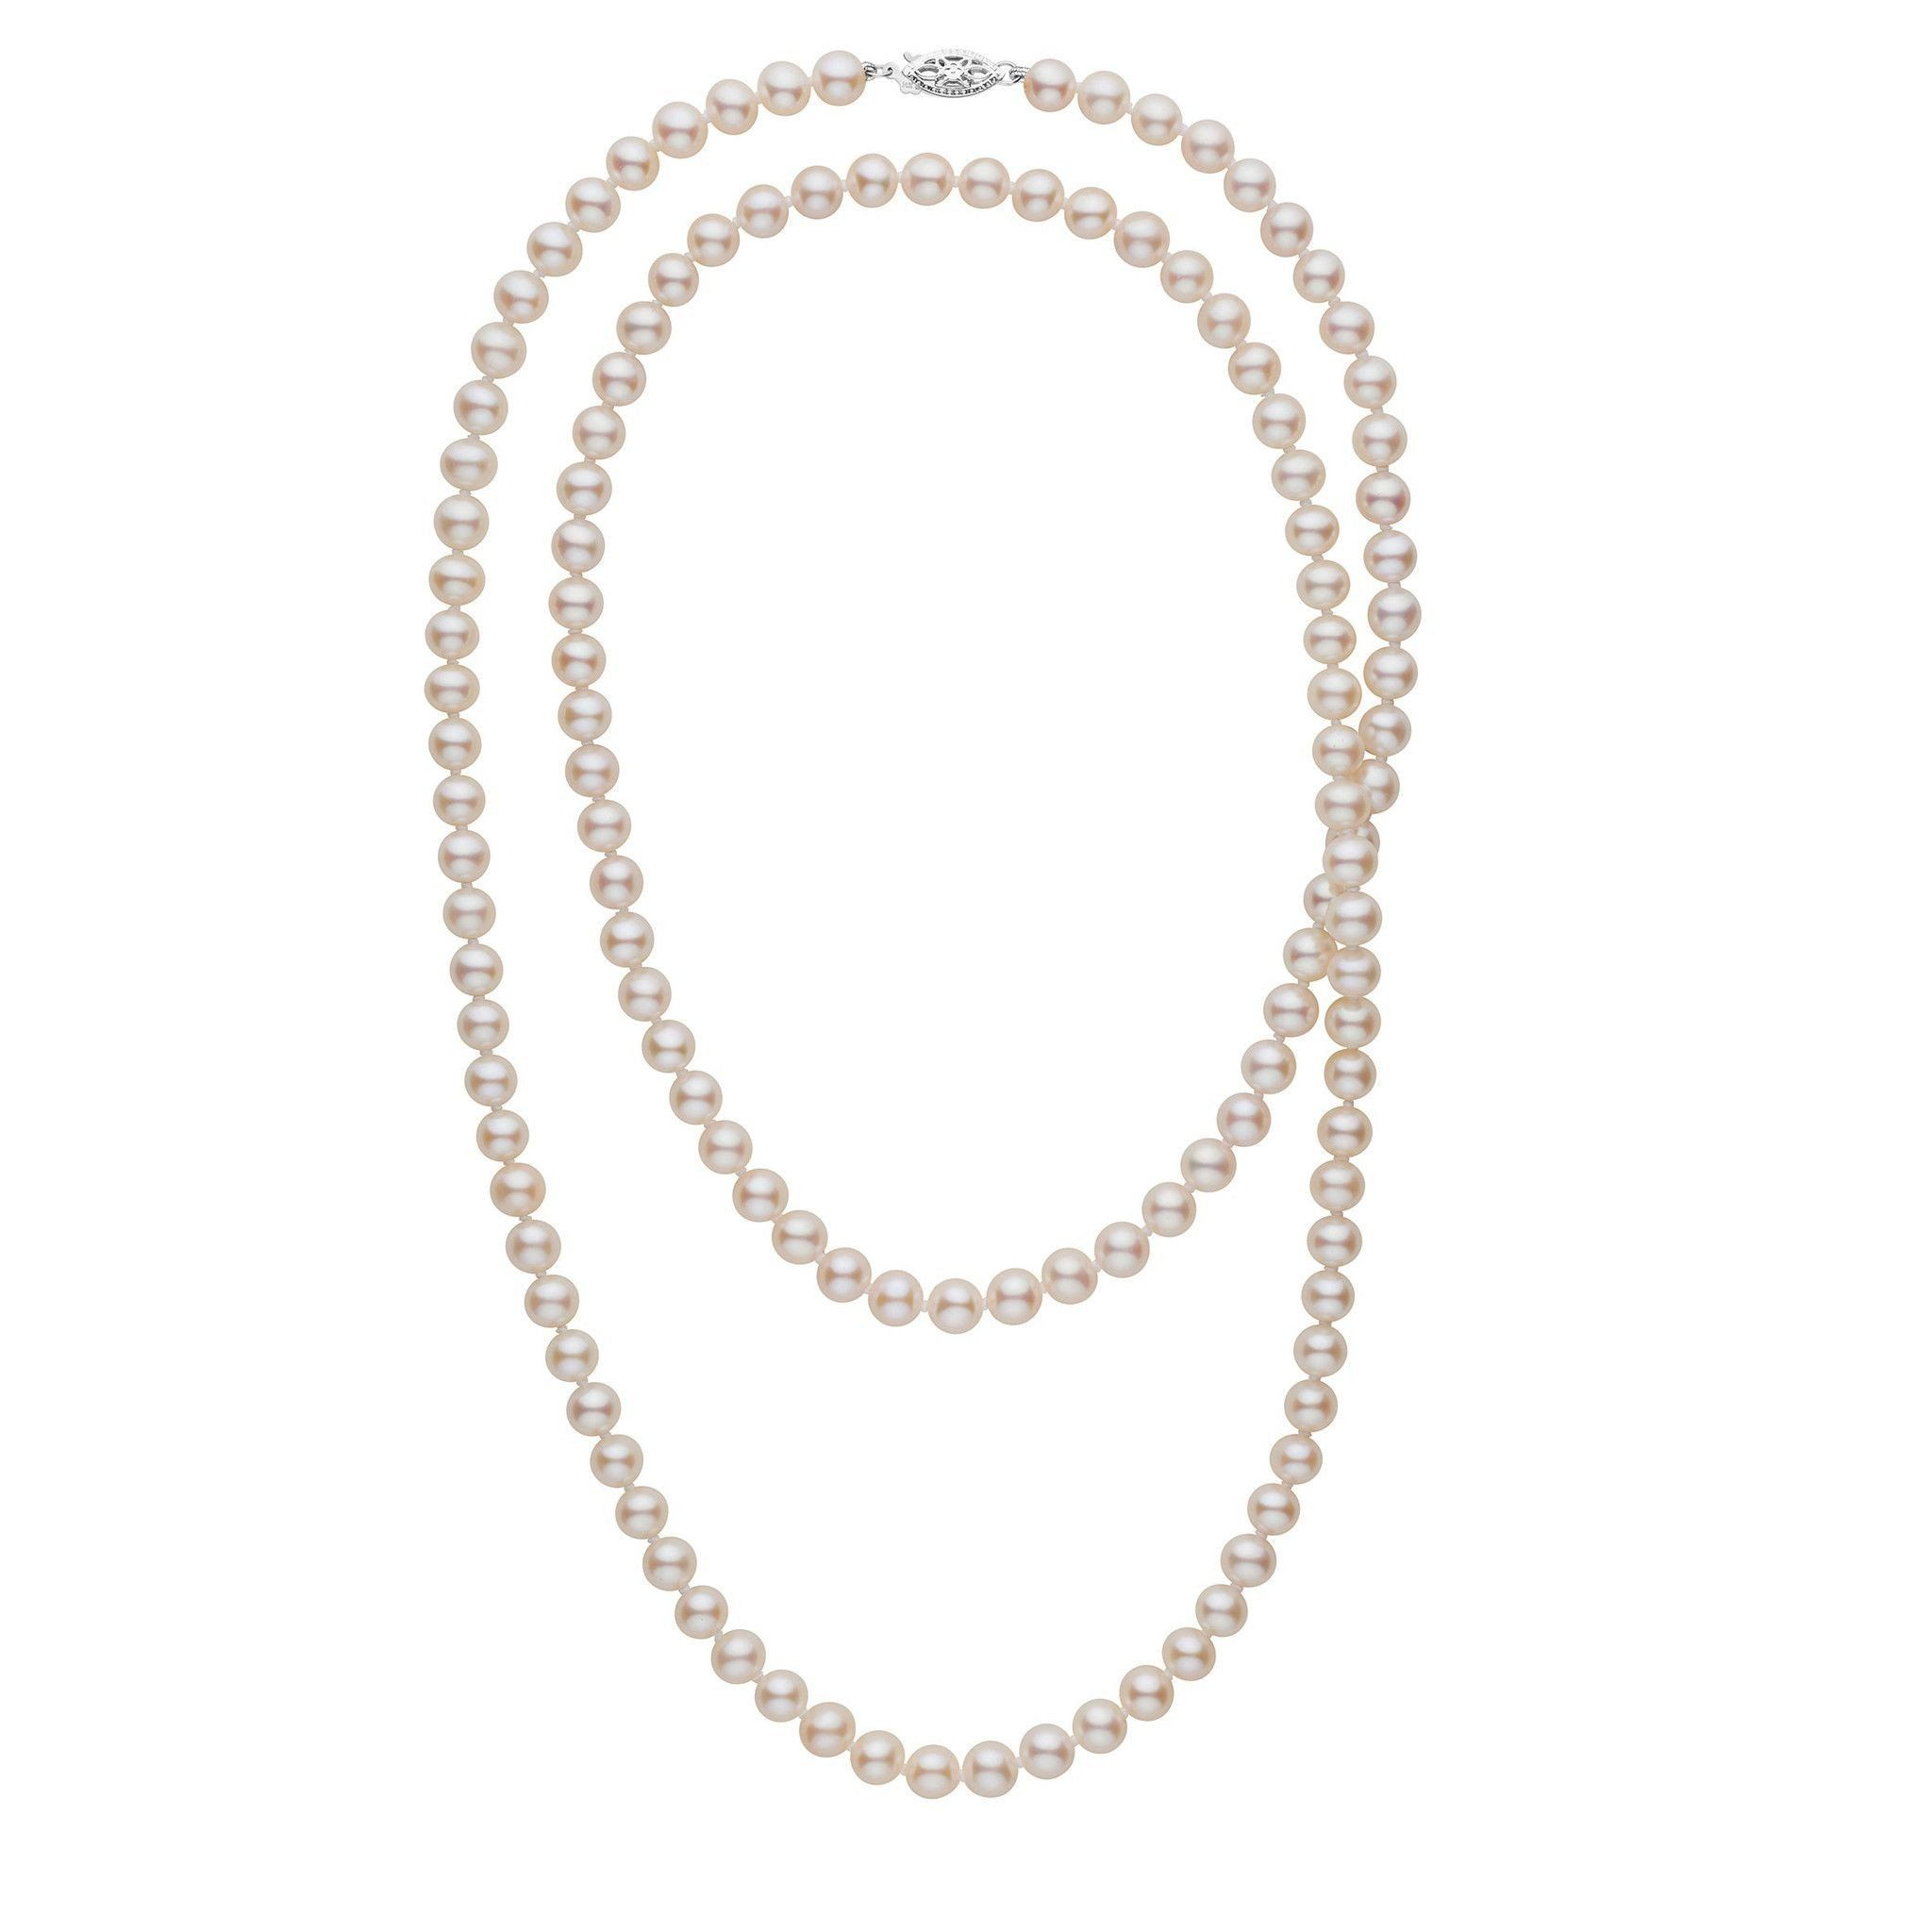 35-inch 6.5-7.0 mm AAA White Freshwater Pearl Necklace